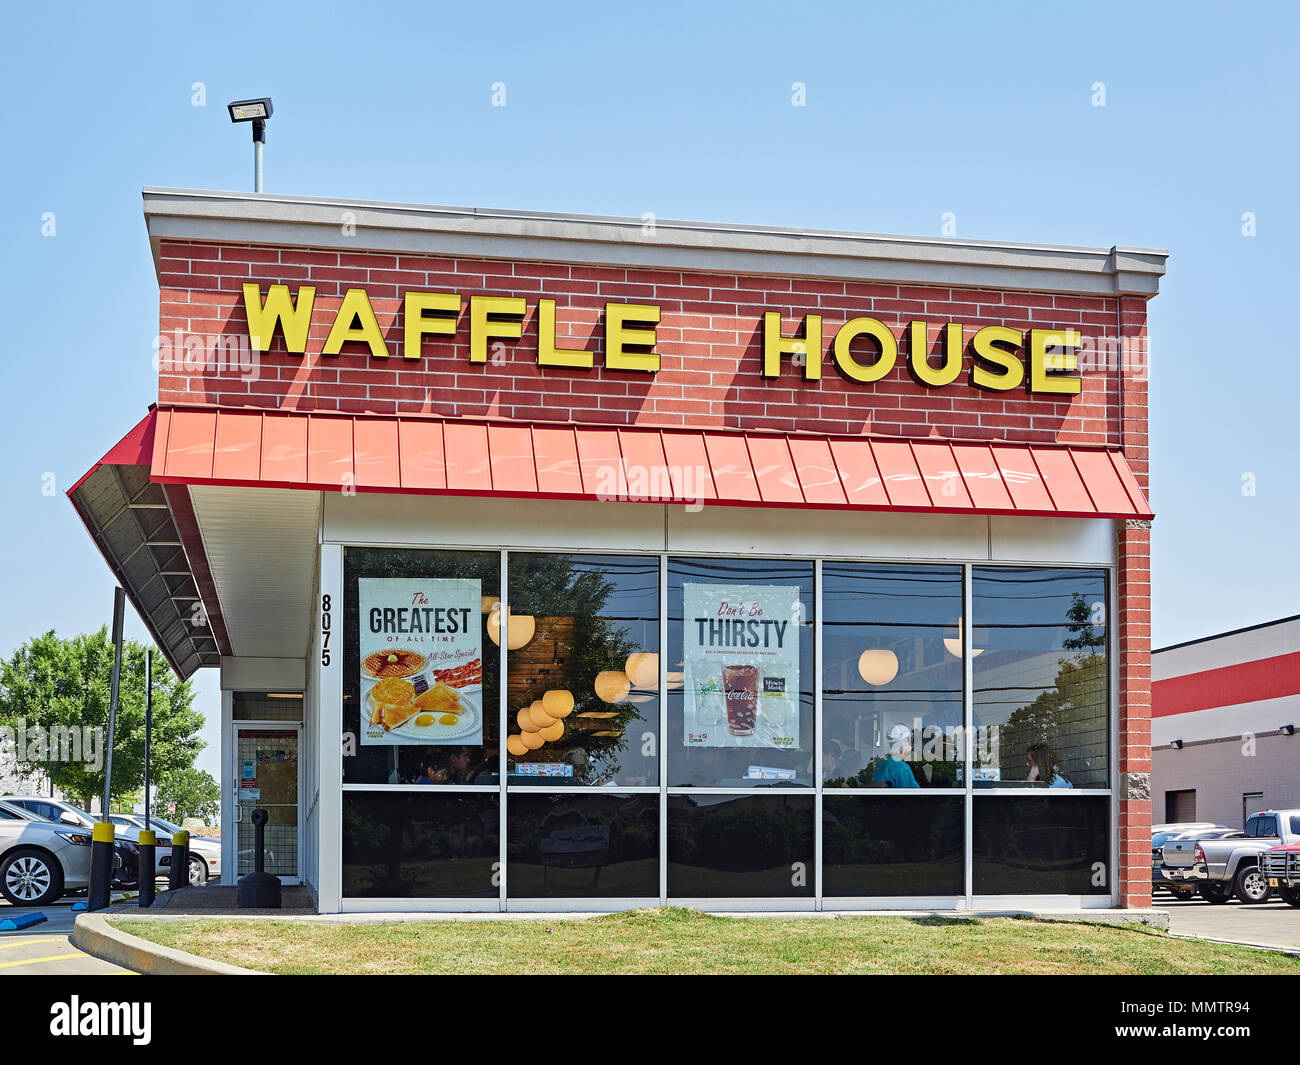 Waffle House restaurant exterior front entrance in Montgomery Alabama, USA. - Stock Image